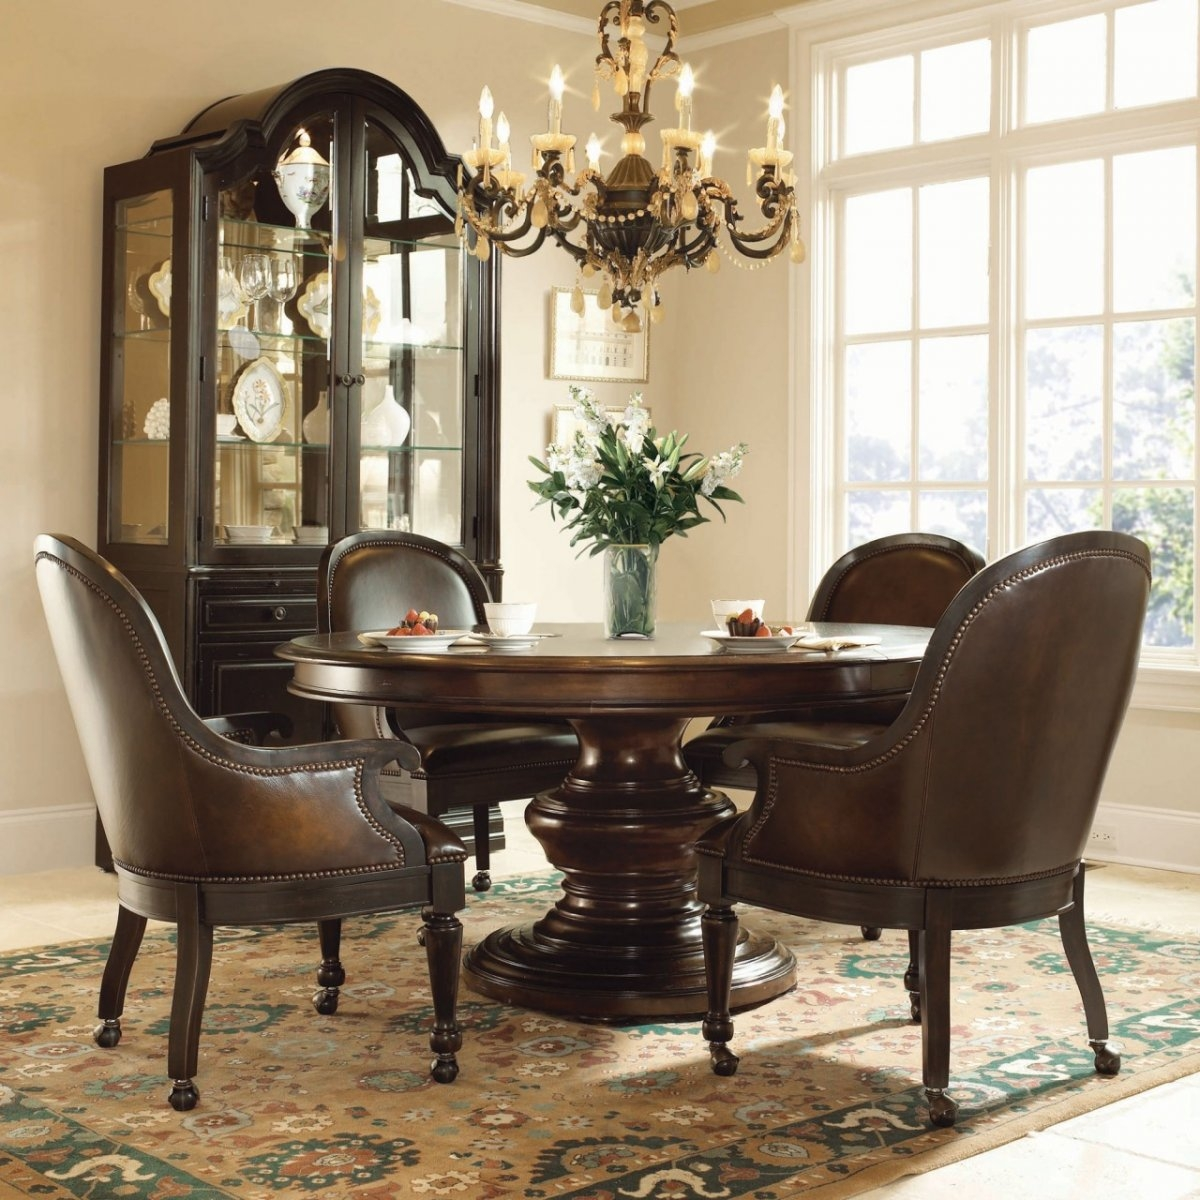 Kitchen Table And Chair Sets With Wheels